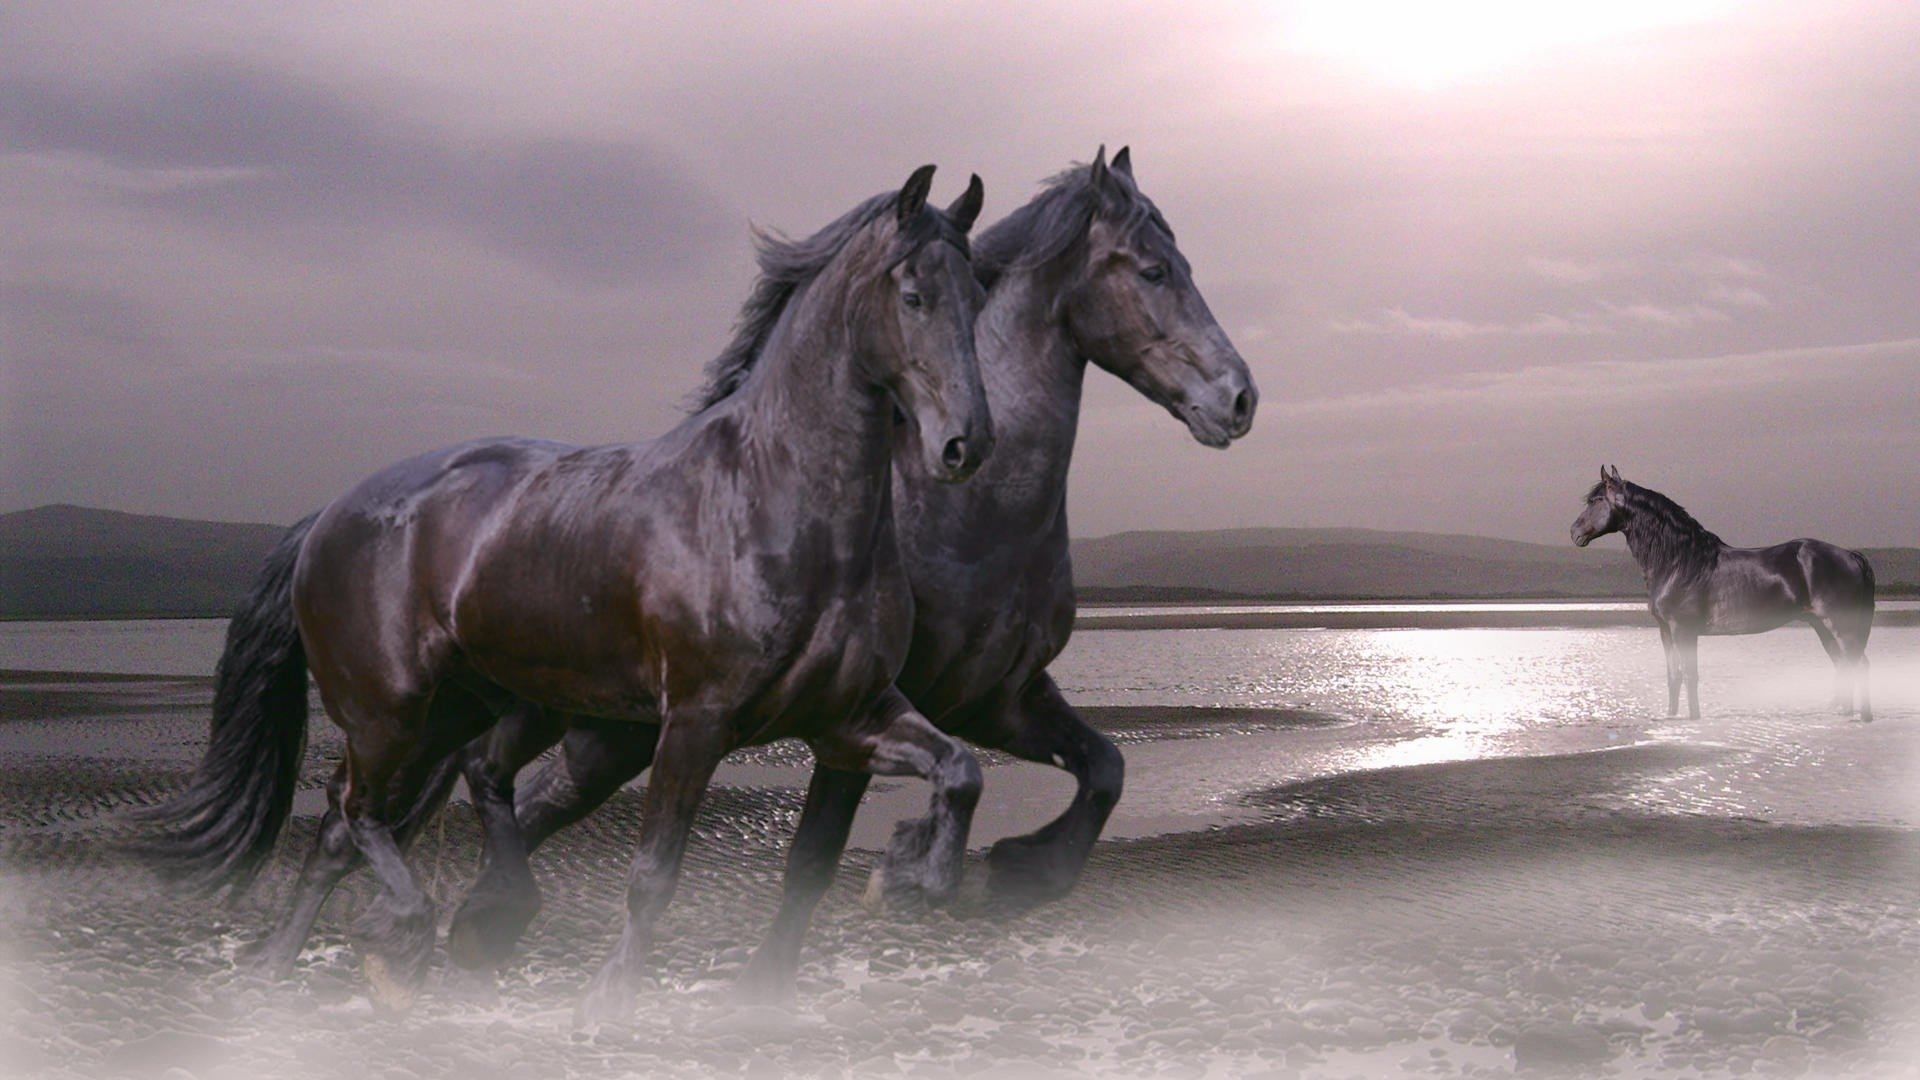 35 1920x1080 Hd Horse Wallpapers On Wallpapersafari